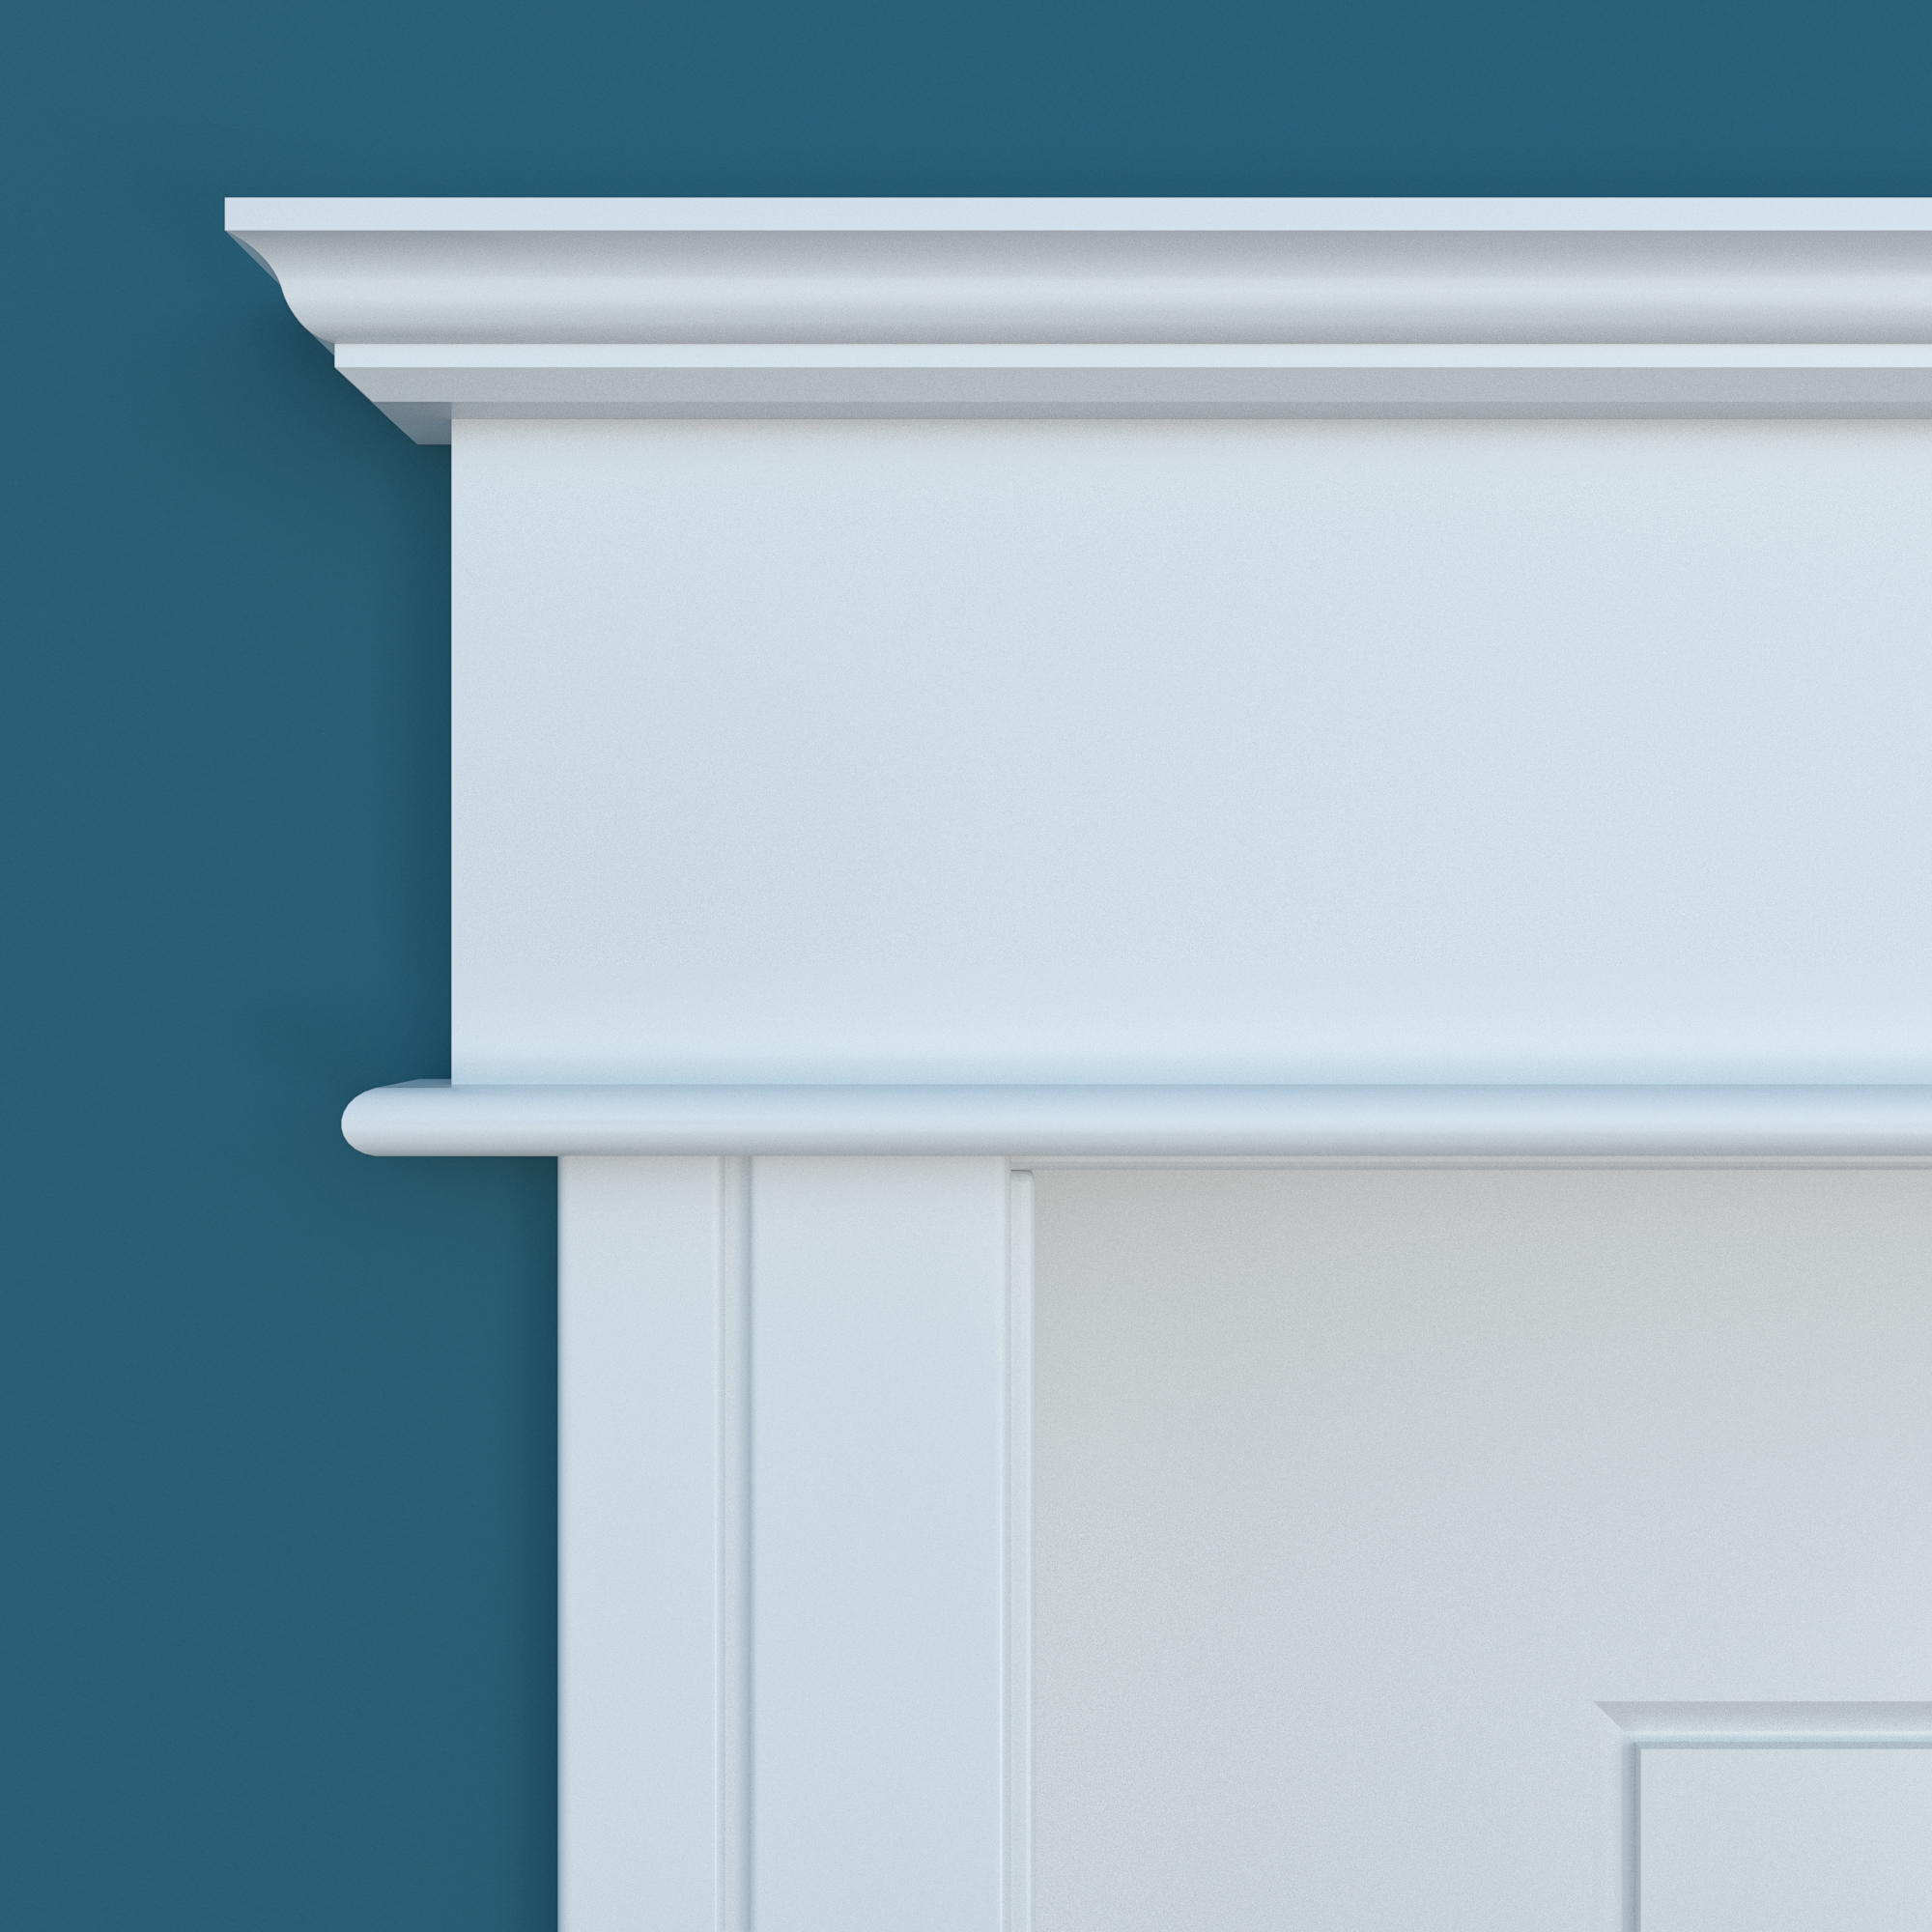 Architrave Build-Up     1035E   + 1x6 +   H282